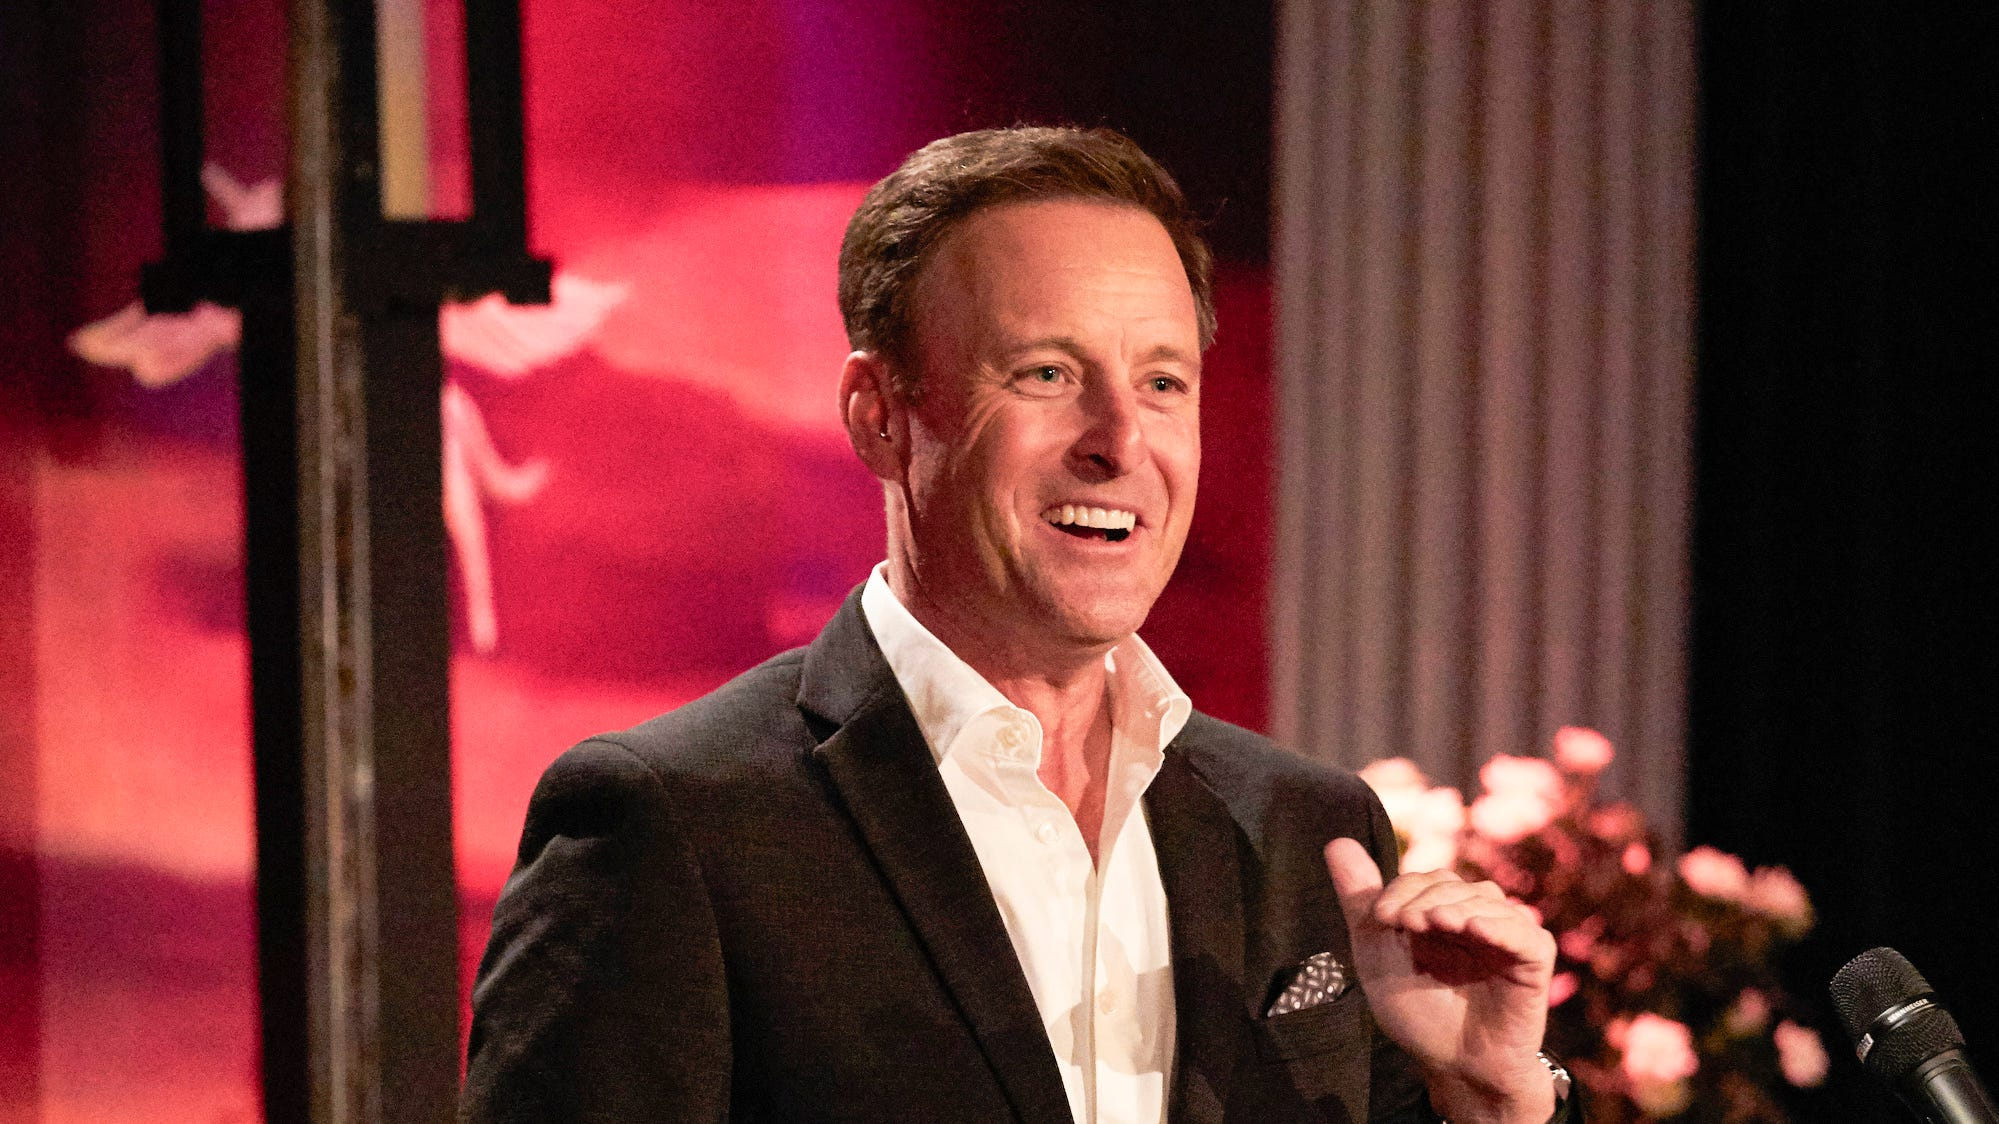 Chris Harrison will be replaced by Tayshia Adams, Kaitlyn Bristowe as 'The Bachelorette' host - USA TODAY